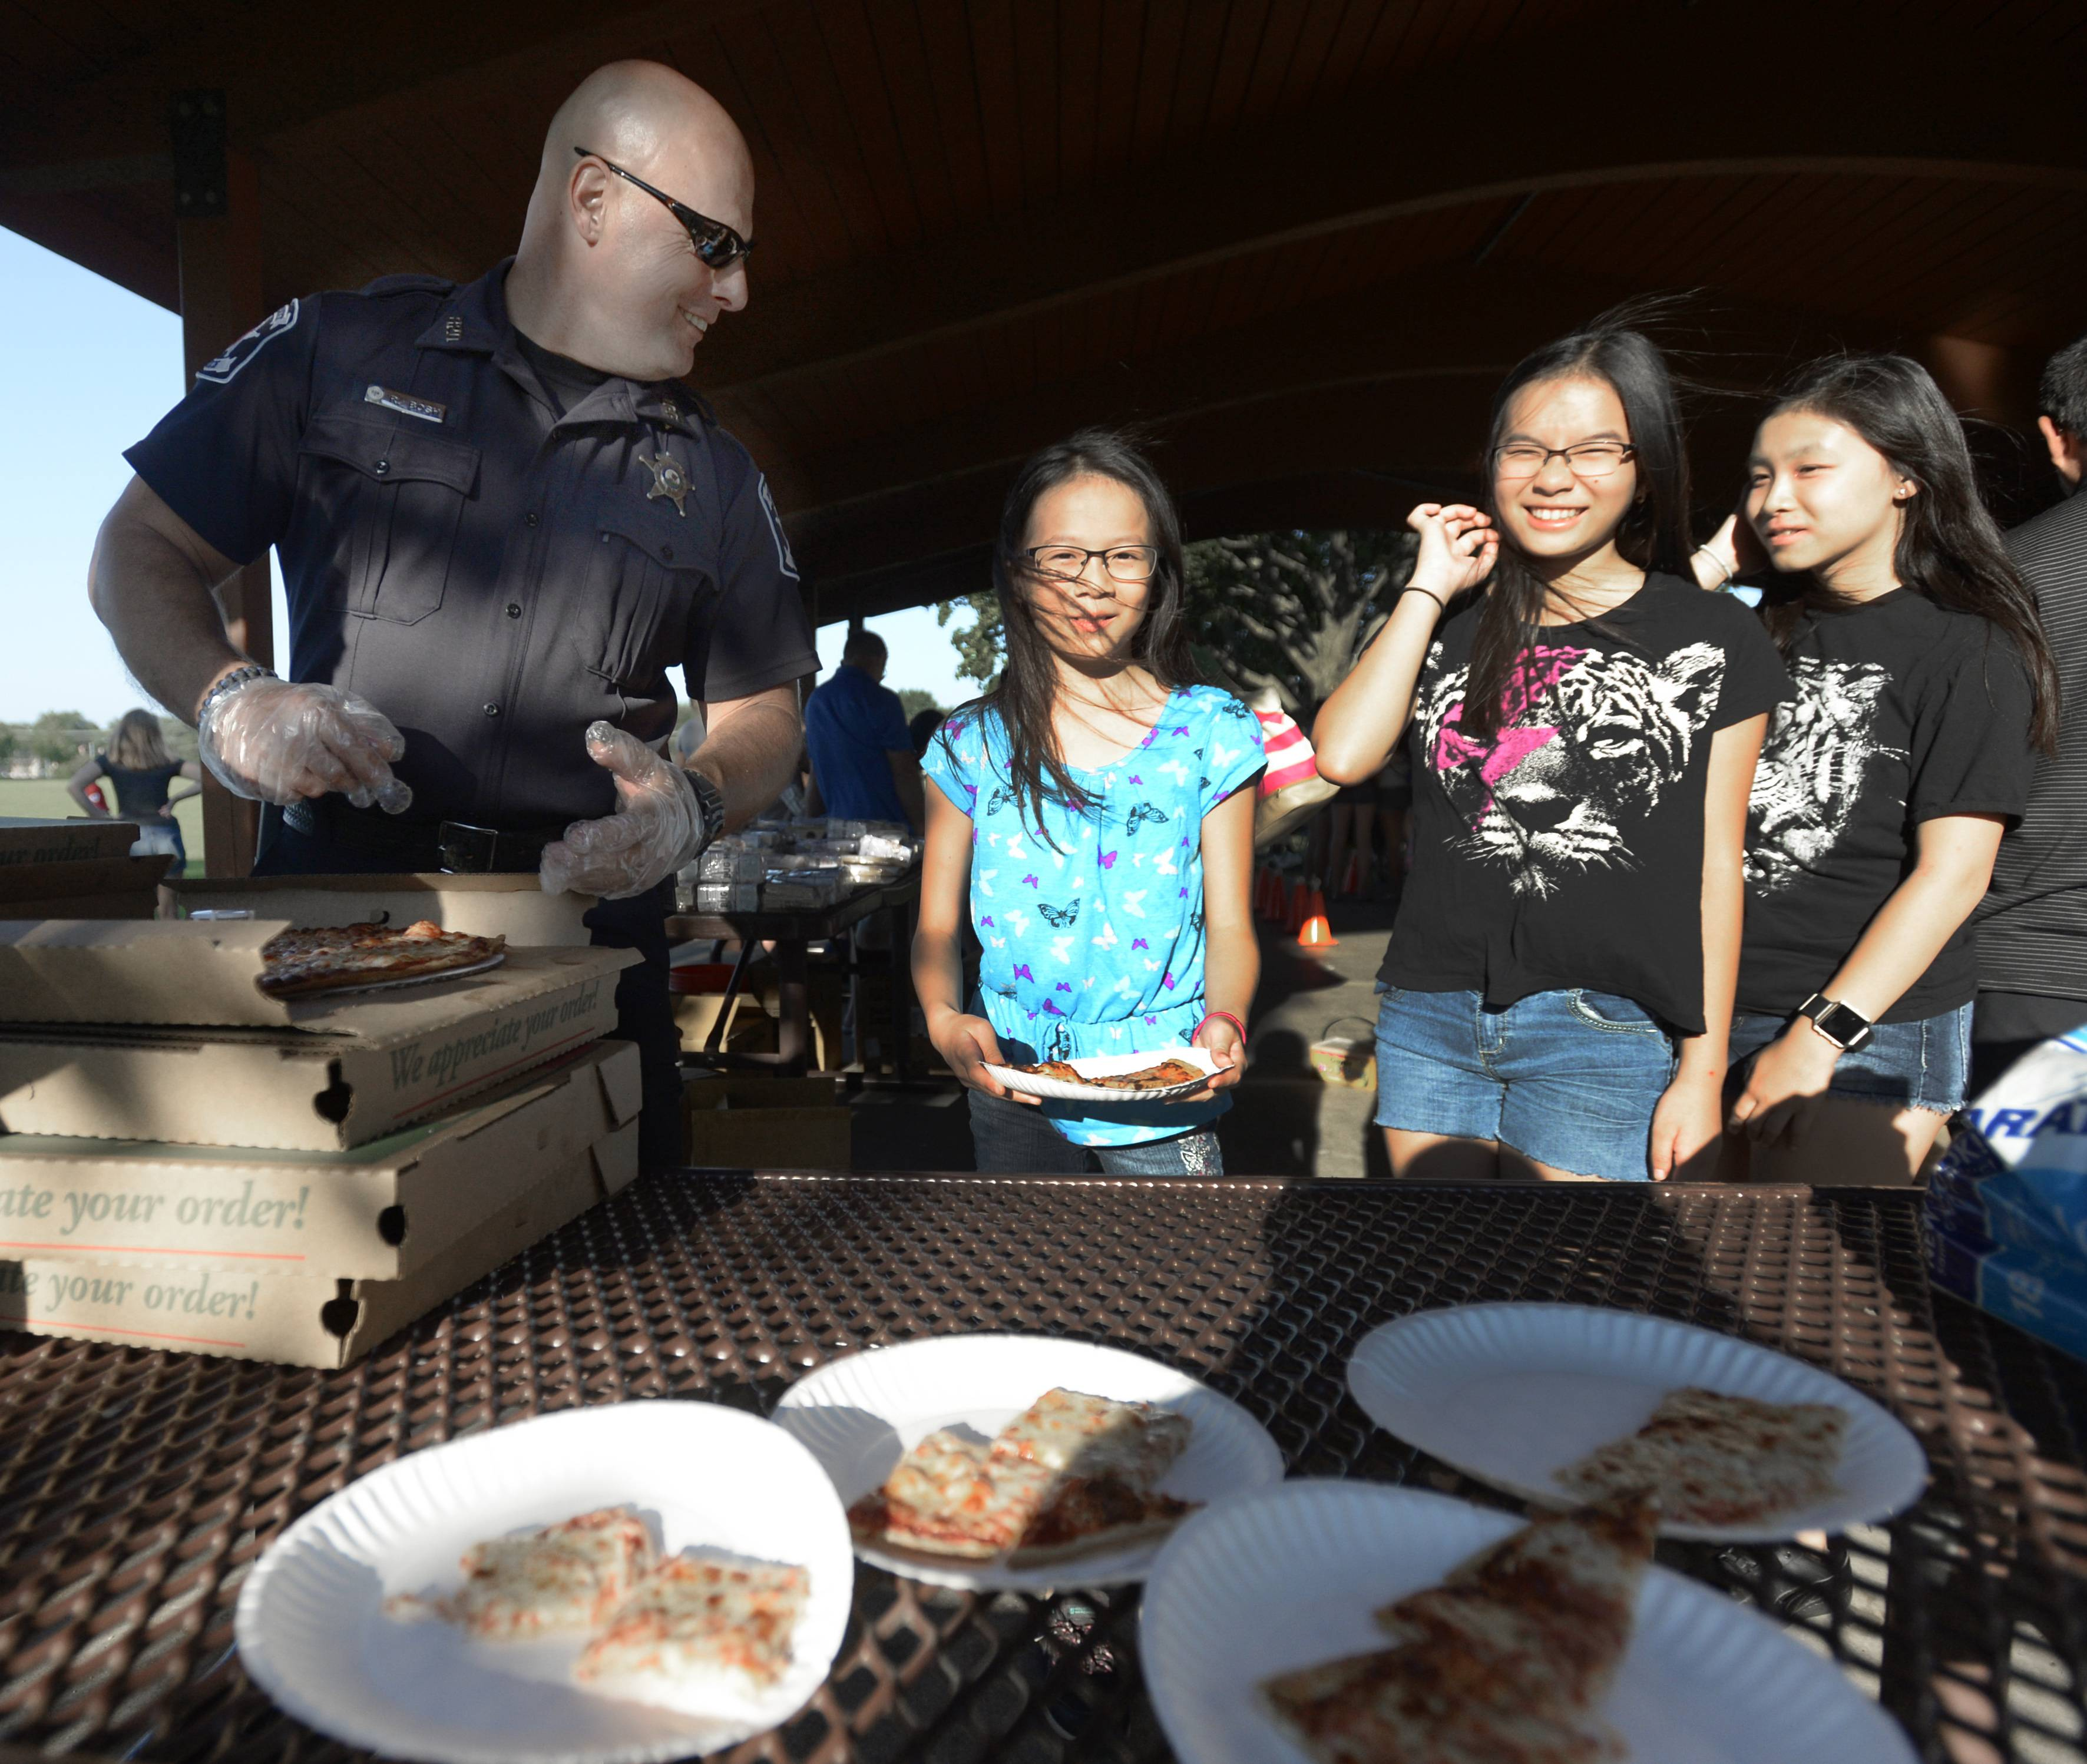 Bartlett police officer Rich Bosh treats participants of last year's National Night Out Family Fun Night to pizza at the Jim Jensen Pavilion.